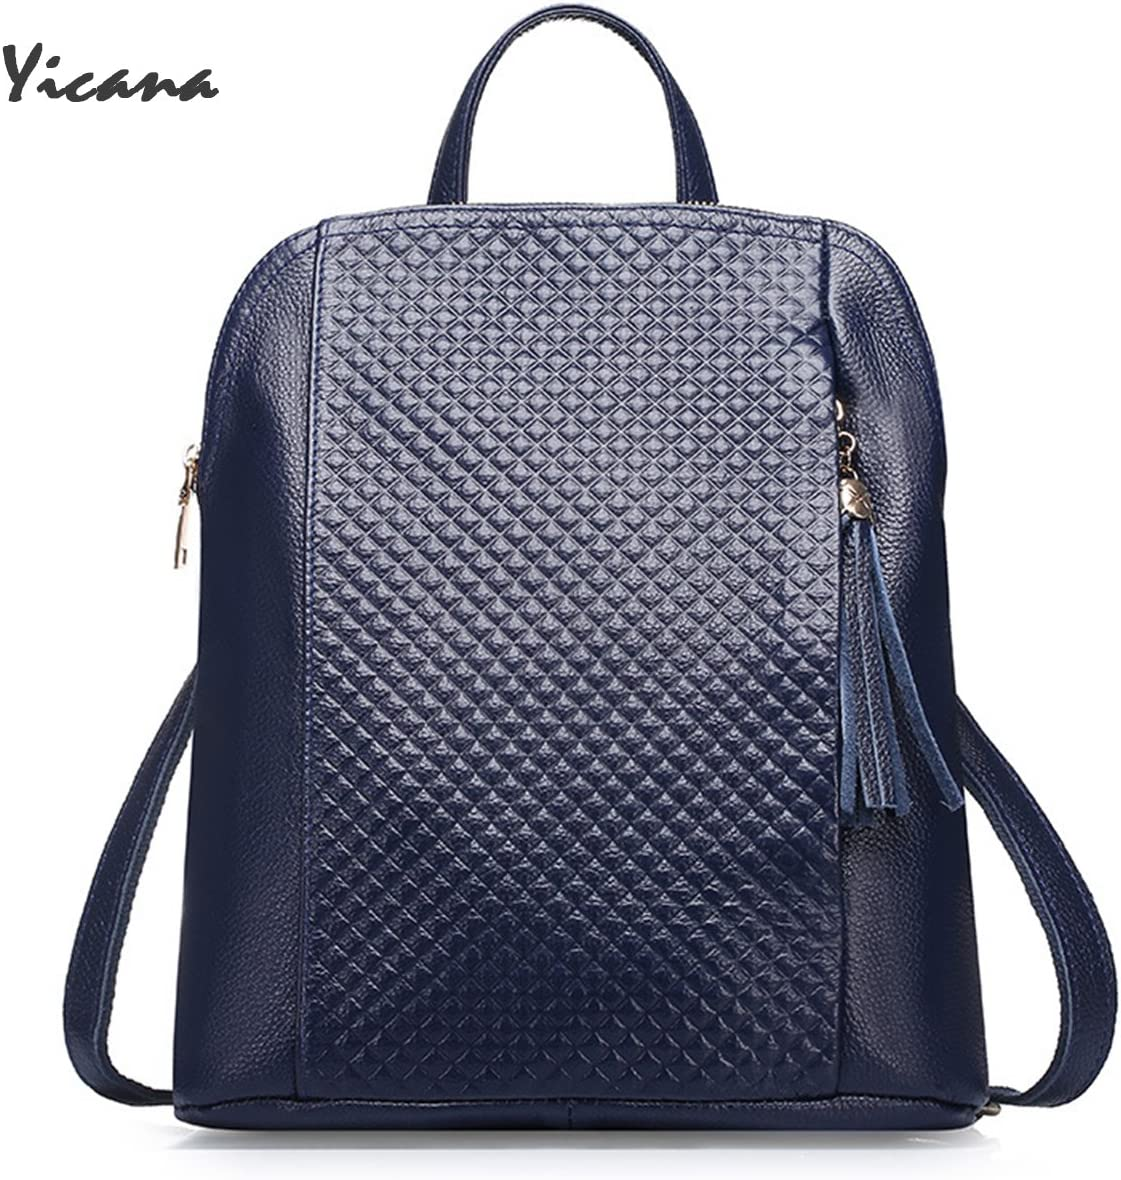 Yicana 2018 Spring//Summer New Style Genuine Leather Women Capacity Backpack Travelling Bag Blue